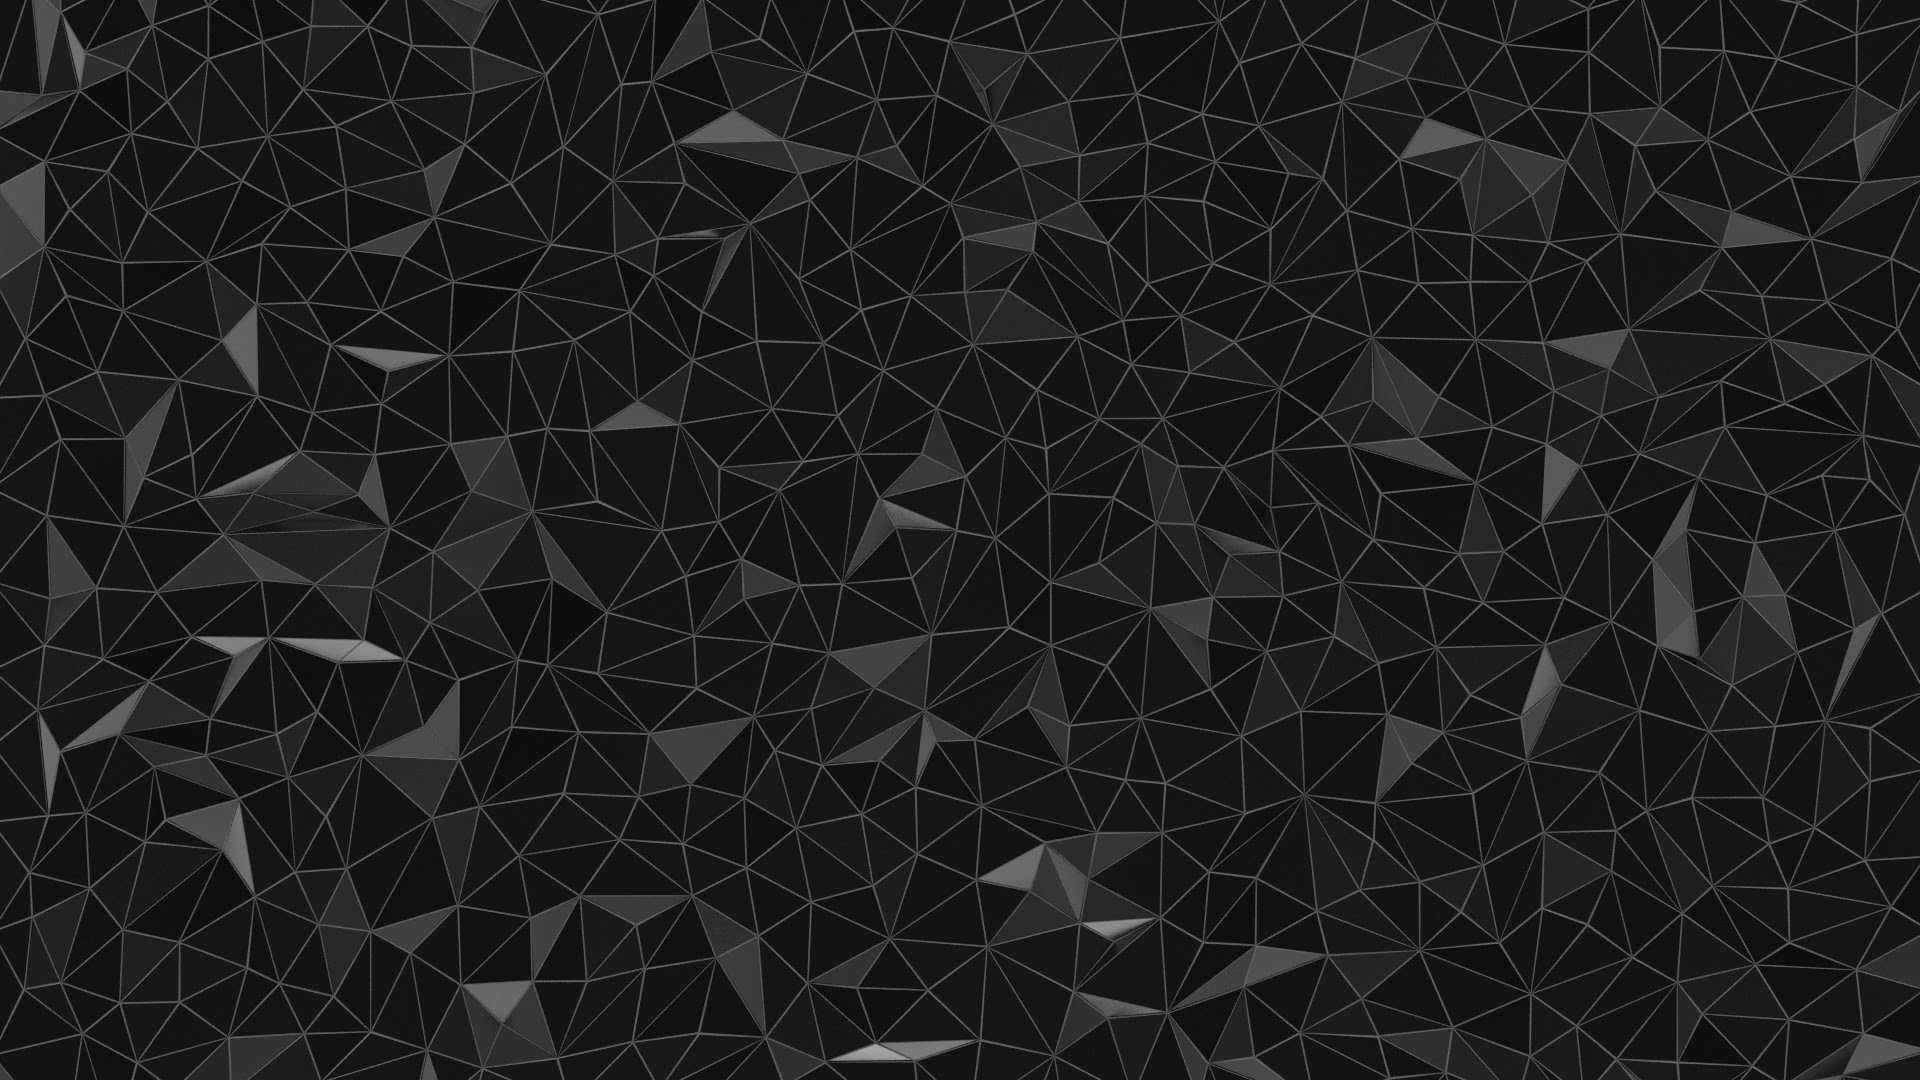 Low Poly Wallpapers 79+ images